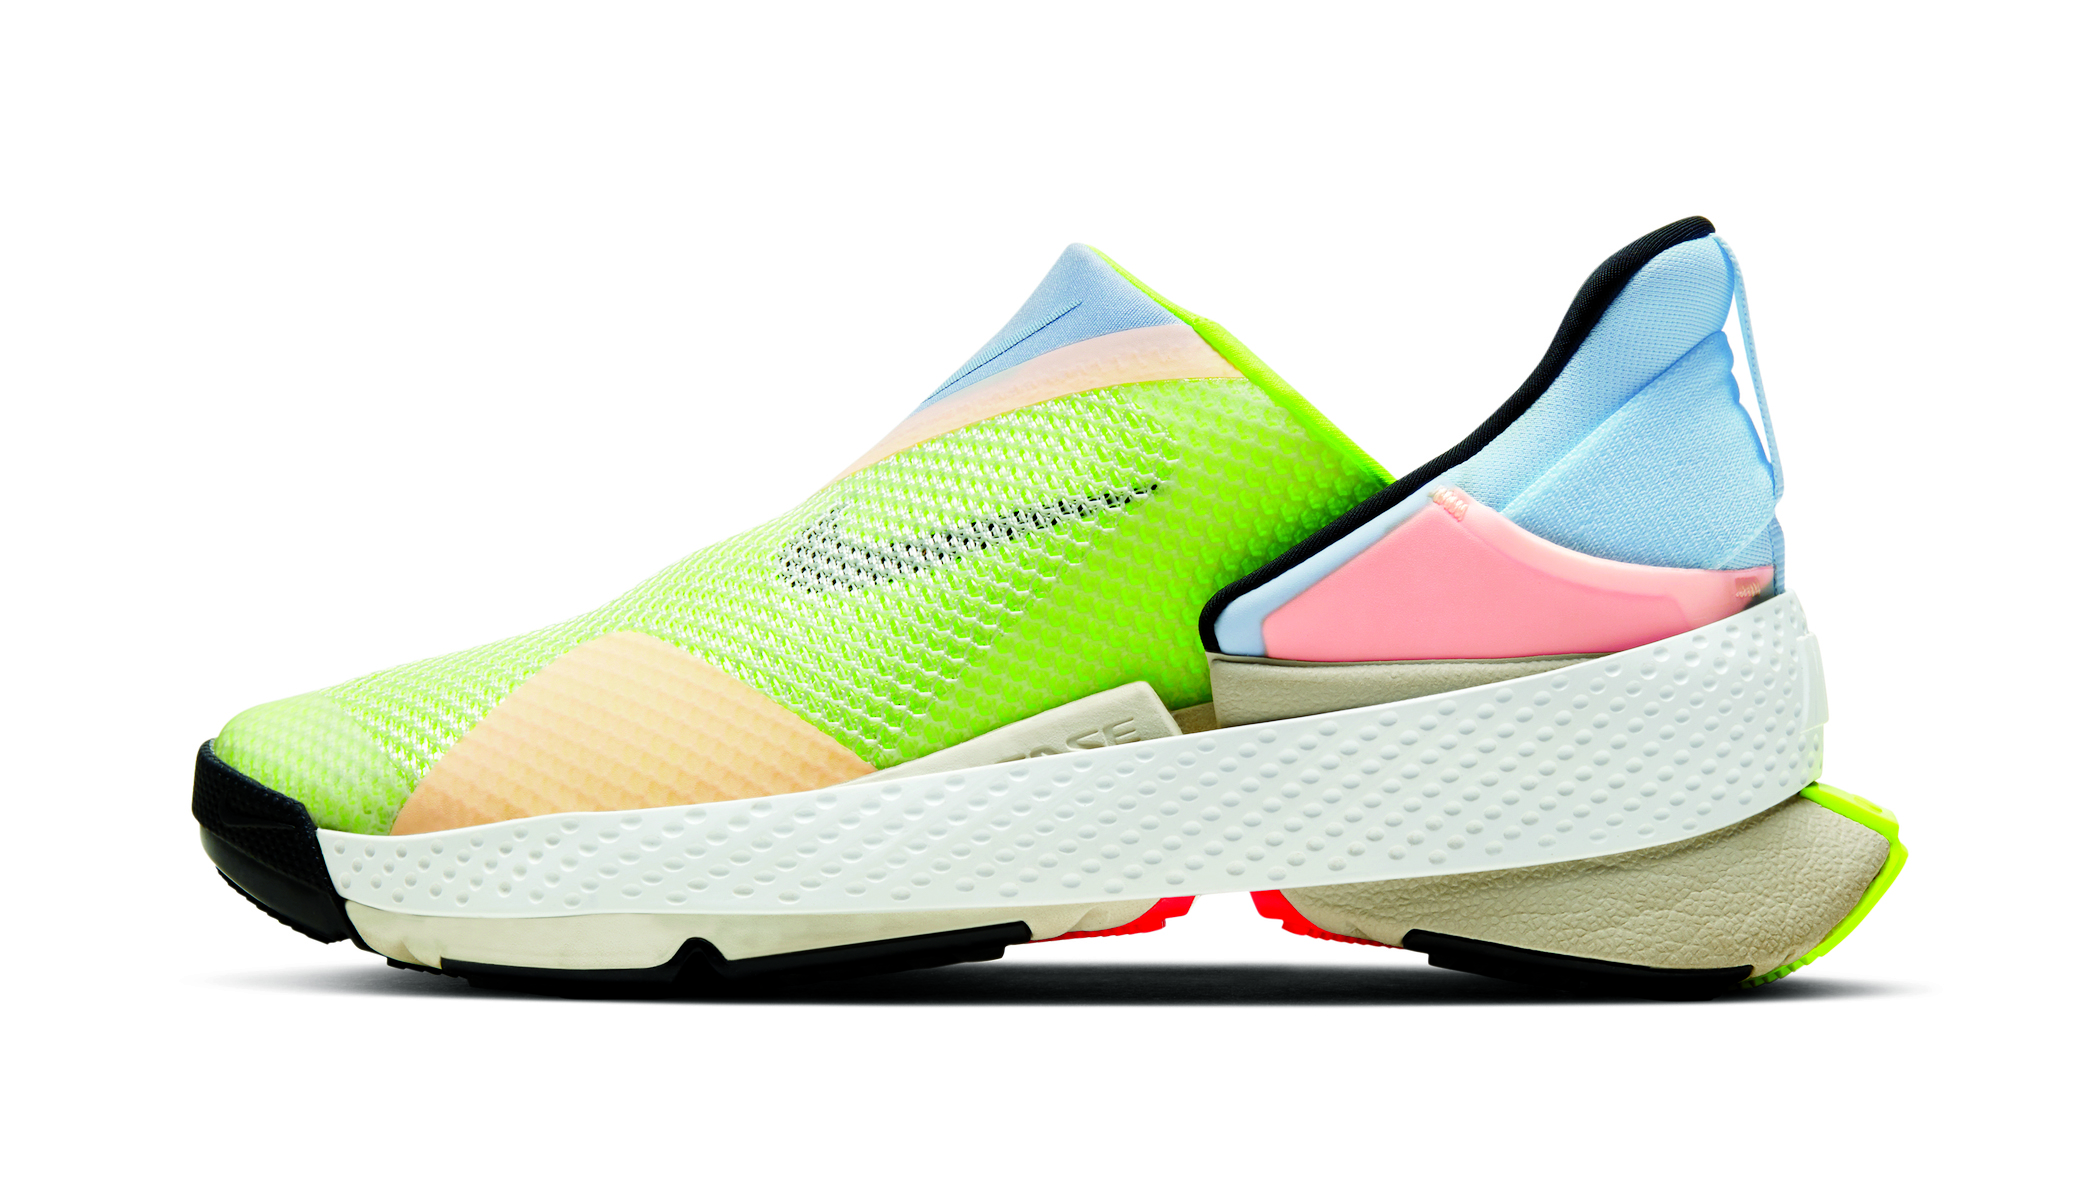 Nike Fly Ease running shoes in multicoloured